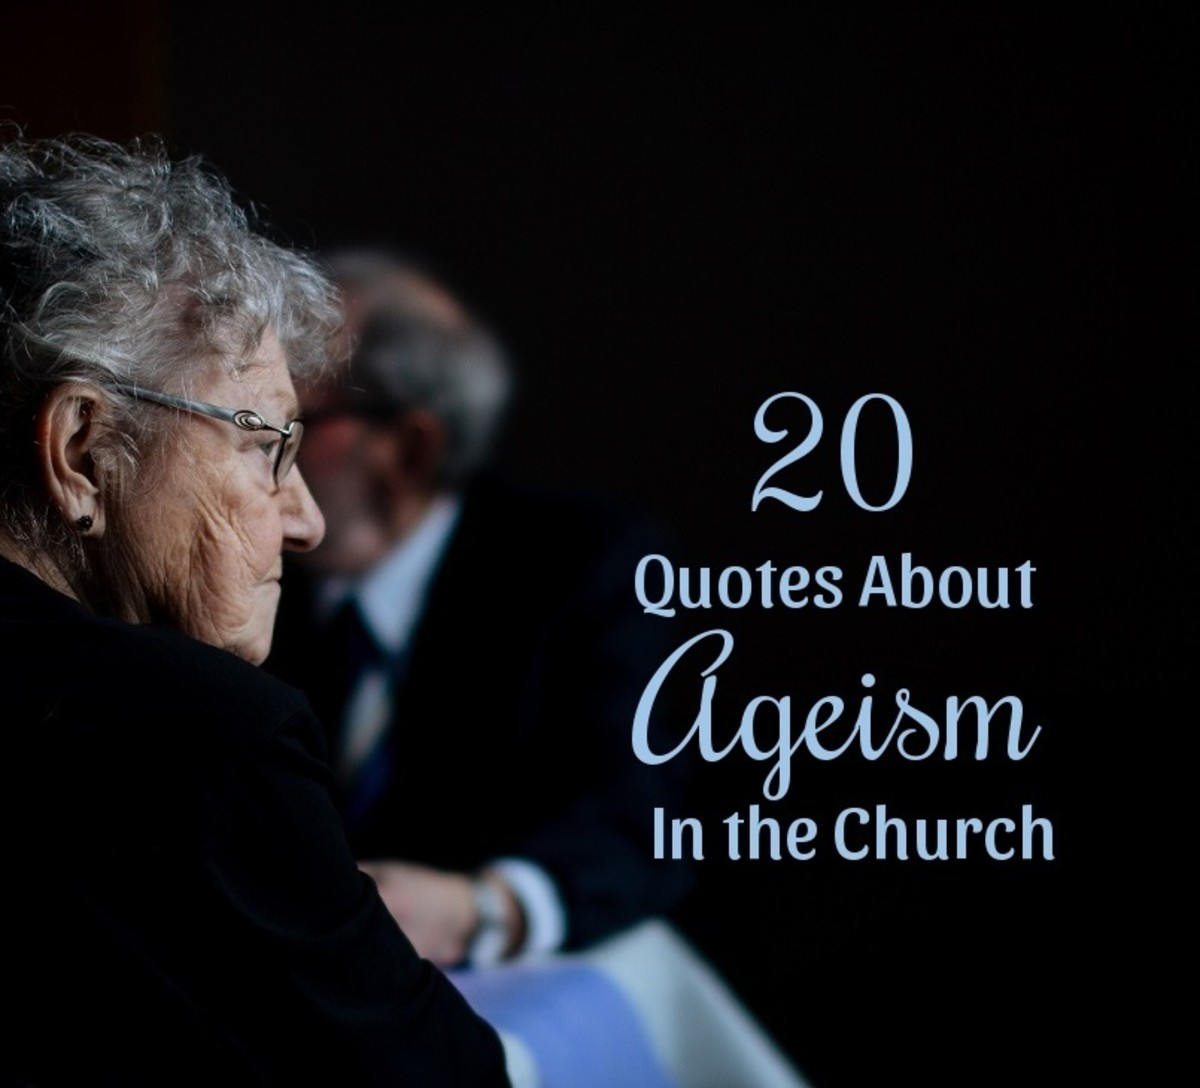 20 Warning Quotes Against Ageism in the Church